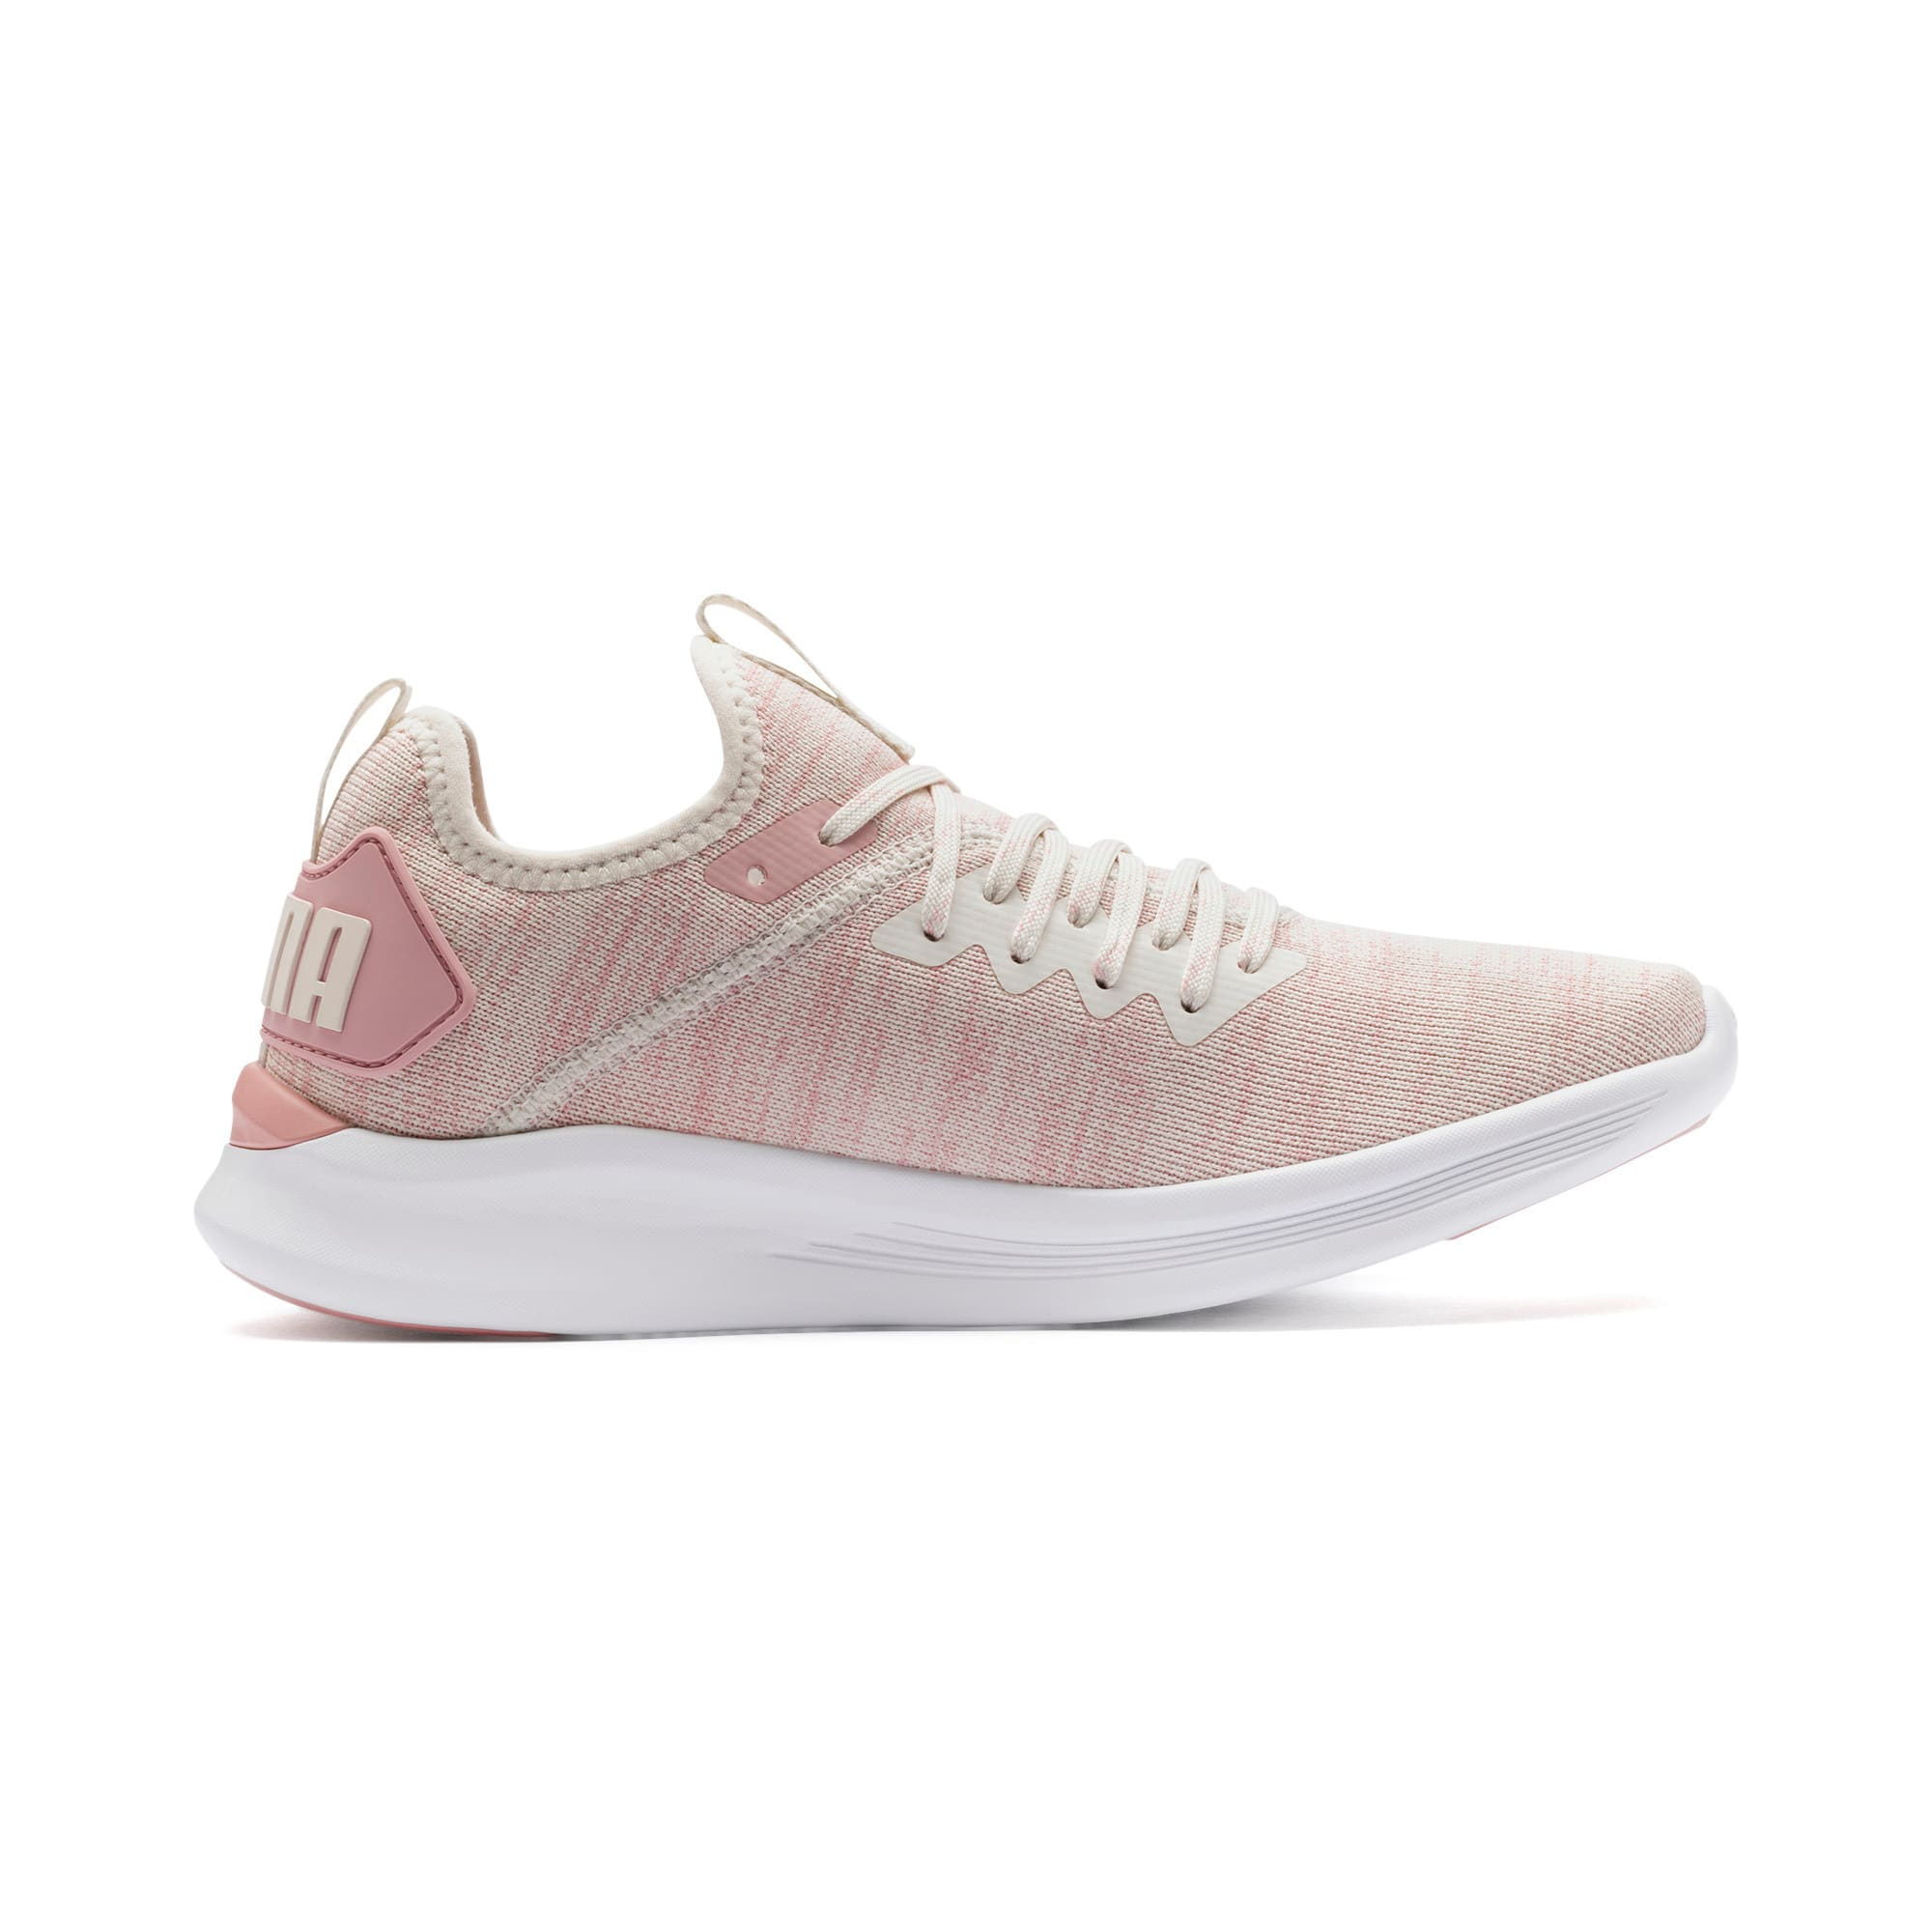 Thumbnail 6 of IGNITE Flash evoKNIT Women's Running Shoes, Pastel Parchment-Bridal Rose, medium